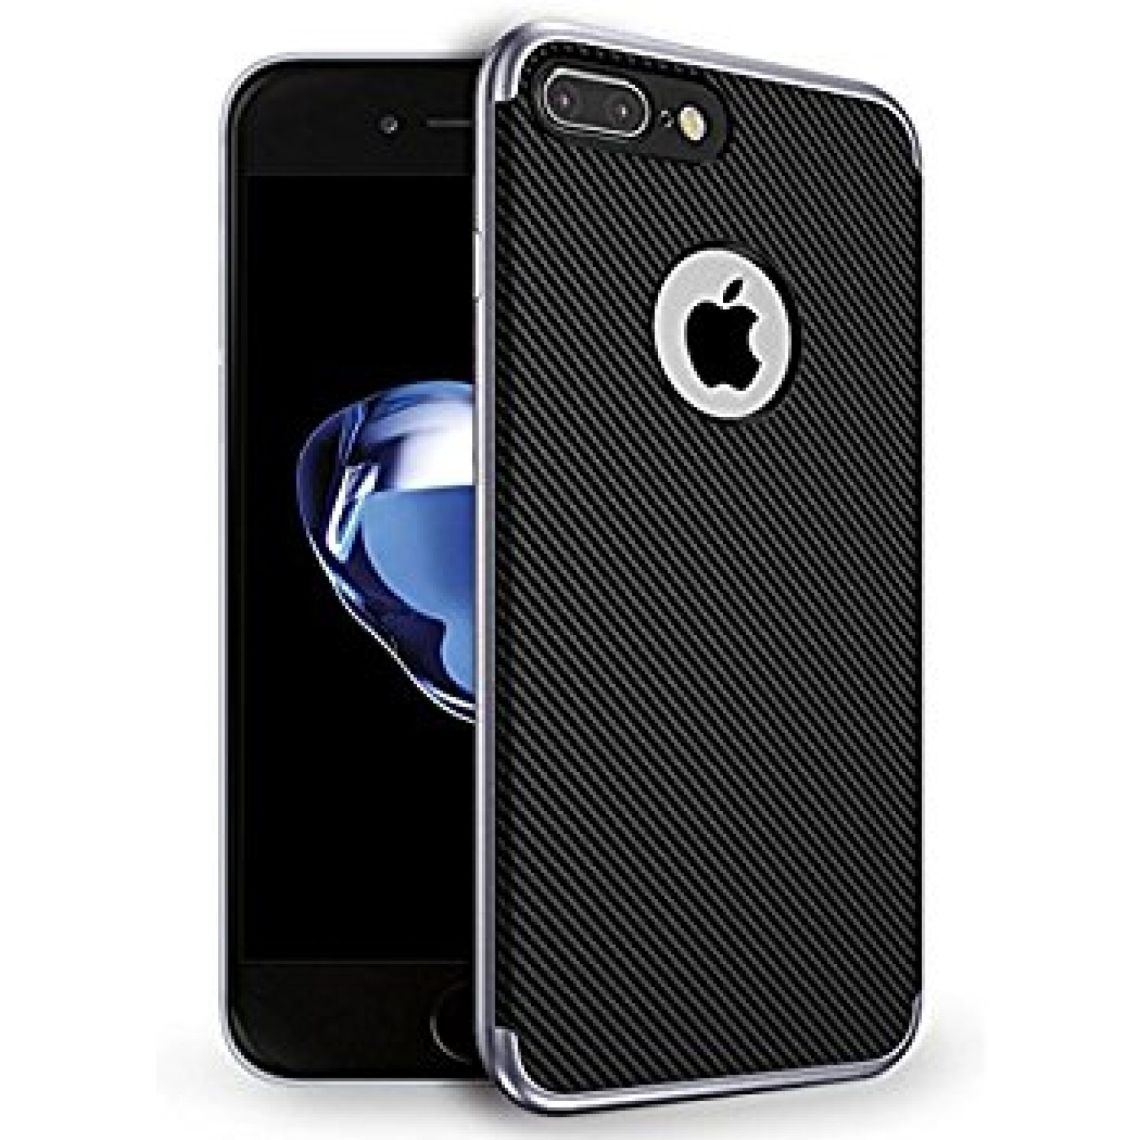 Amazon.com: iPhone 8 Plus Case, iPhone 7 Plus Case, AnsTOP [Slim Fit] Flexible Inner and Reinforced Hard Bumper Frame Protective Back Case for iPhone 8 Plus / iPhone 7 Plus - Gray: Cell Phones & Accessories